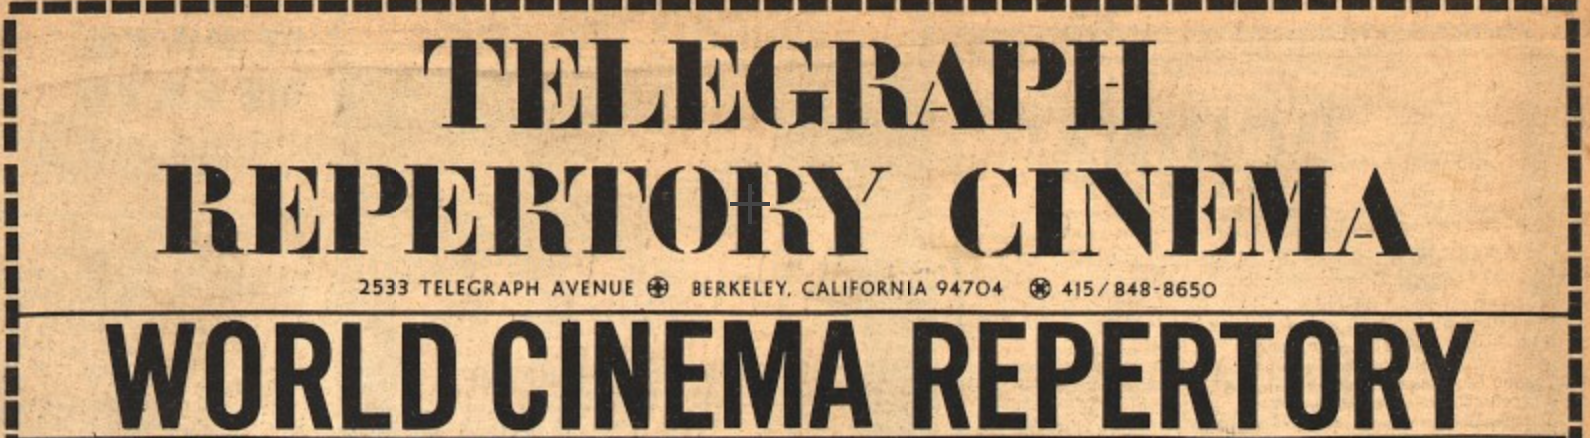 Telegraph Repetory Cinema